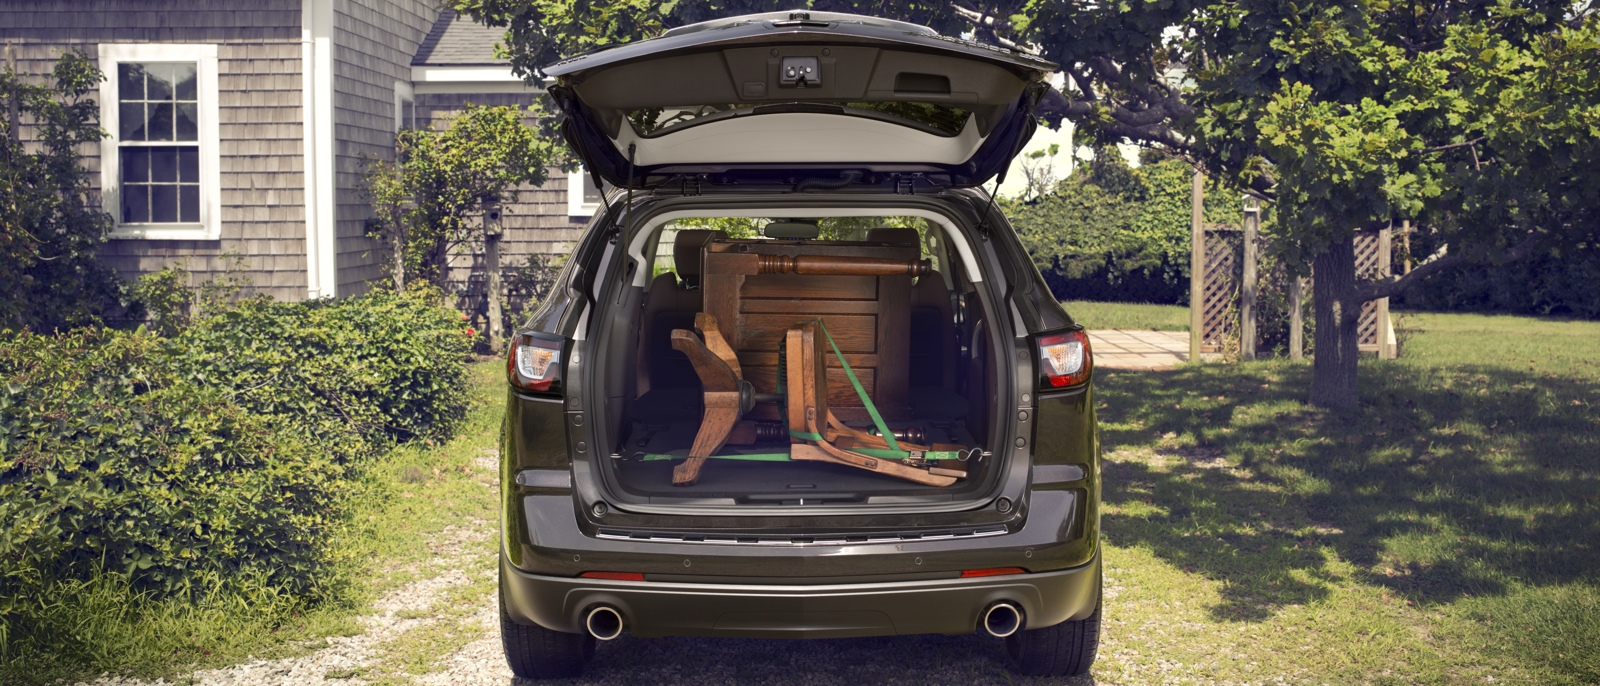 2015 Chevrolet Traverse Rear Cargo Capacity with furniture